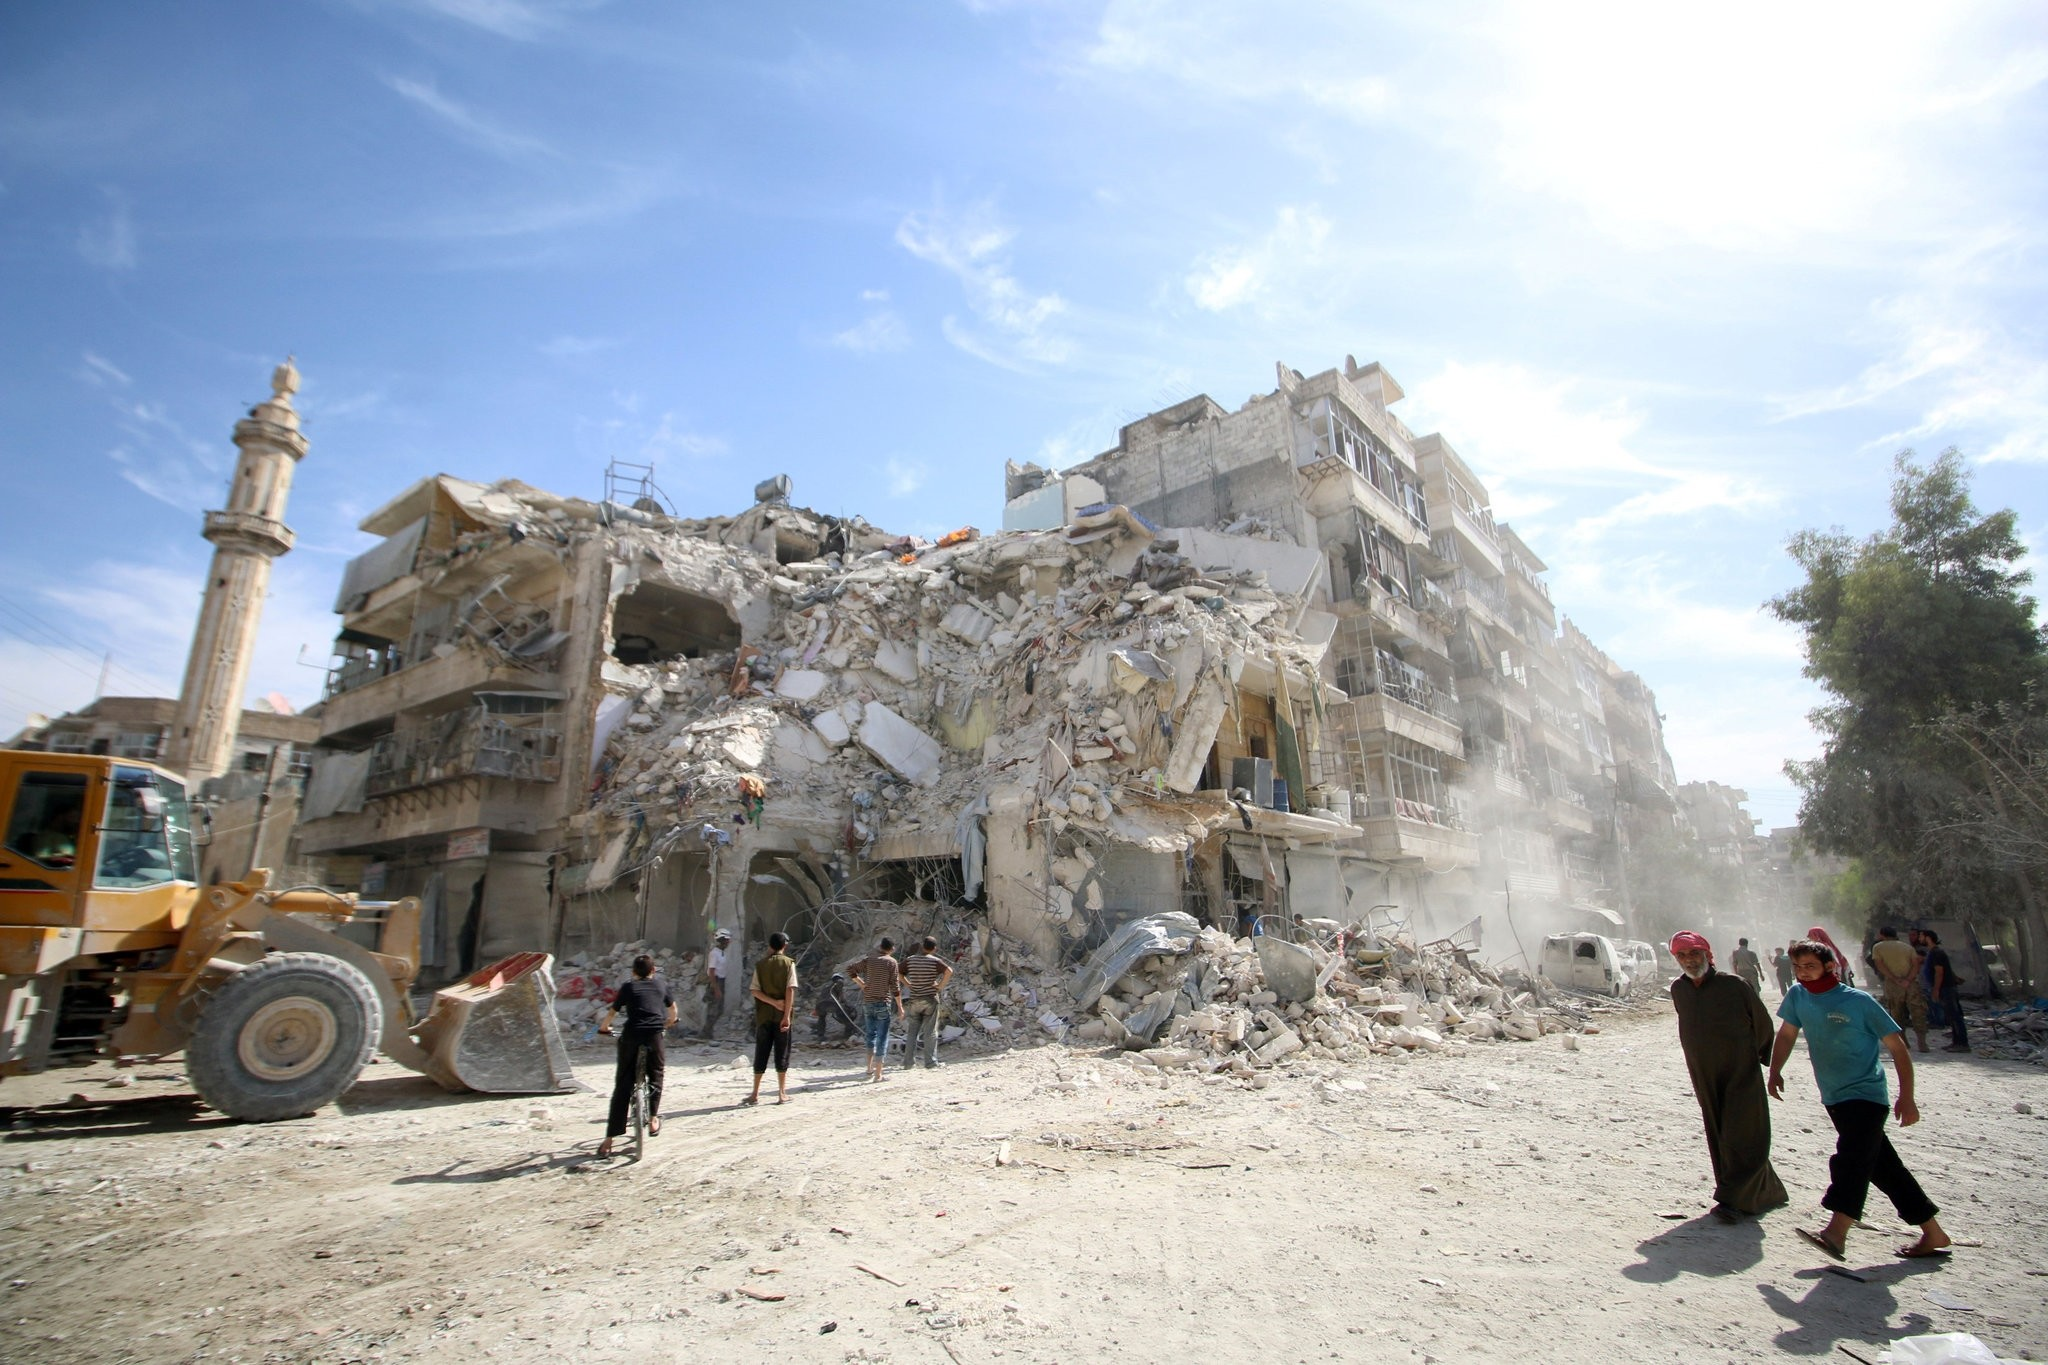 People inspect a damaged site after an air strike Sunday in the rebel-held besieged al-Qaterji neighbourhood of Aleppo, Syria October 17, 2016. (REUTERS Photo)